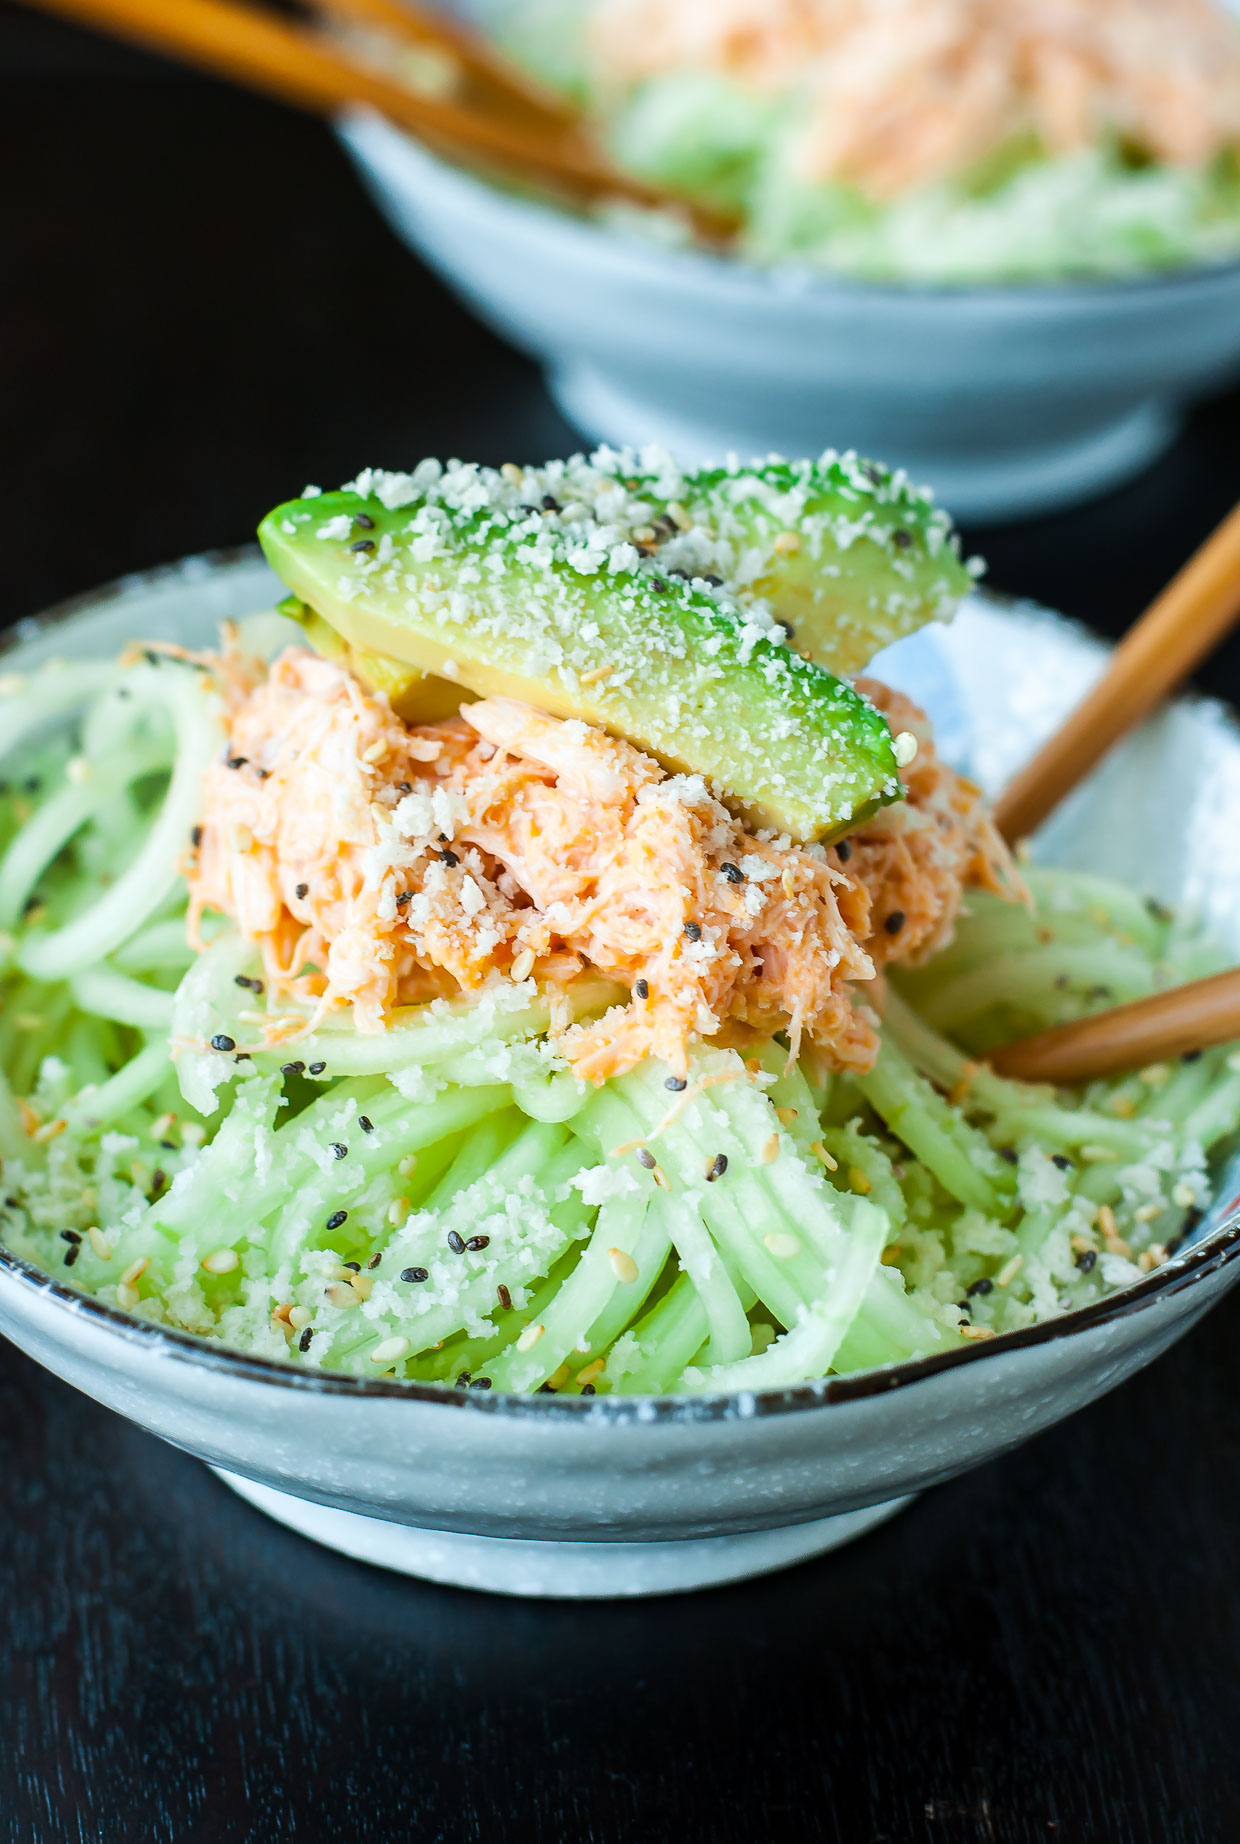 This Spicy Sriracha Crab and Cucumber Salad is refreshing and flavorful! This Japanese-inspired salad is my absolute favorite sushi restaurant appetizer. Make it at home with the recipe for this quick and easy recipe!